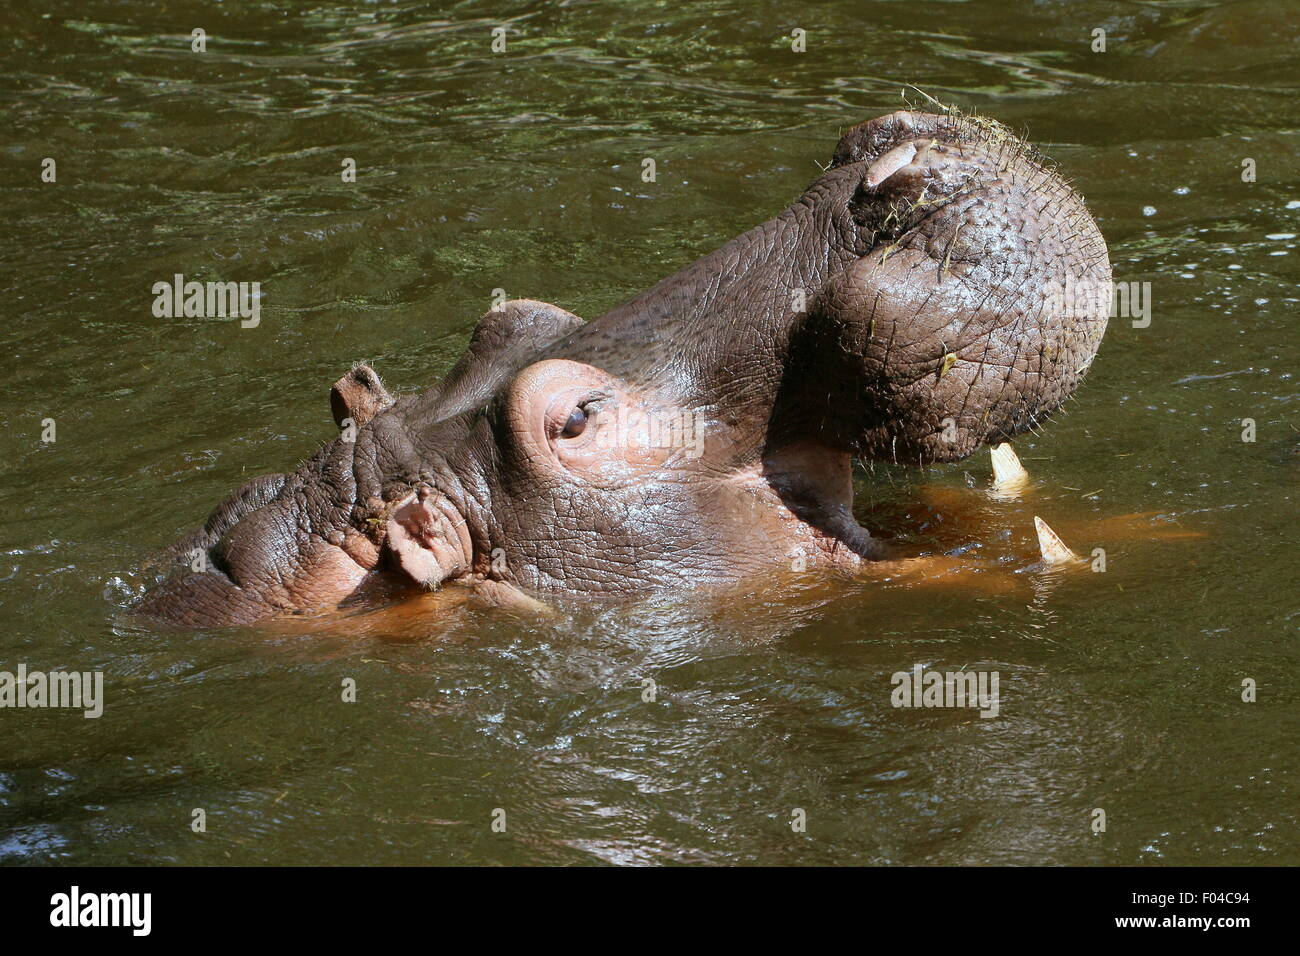 Submerged African Hippo (Hippopotamus amphibius) in close-up, rearing head up high - Stock Image